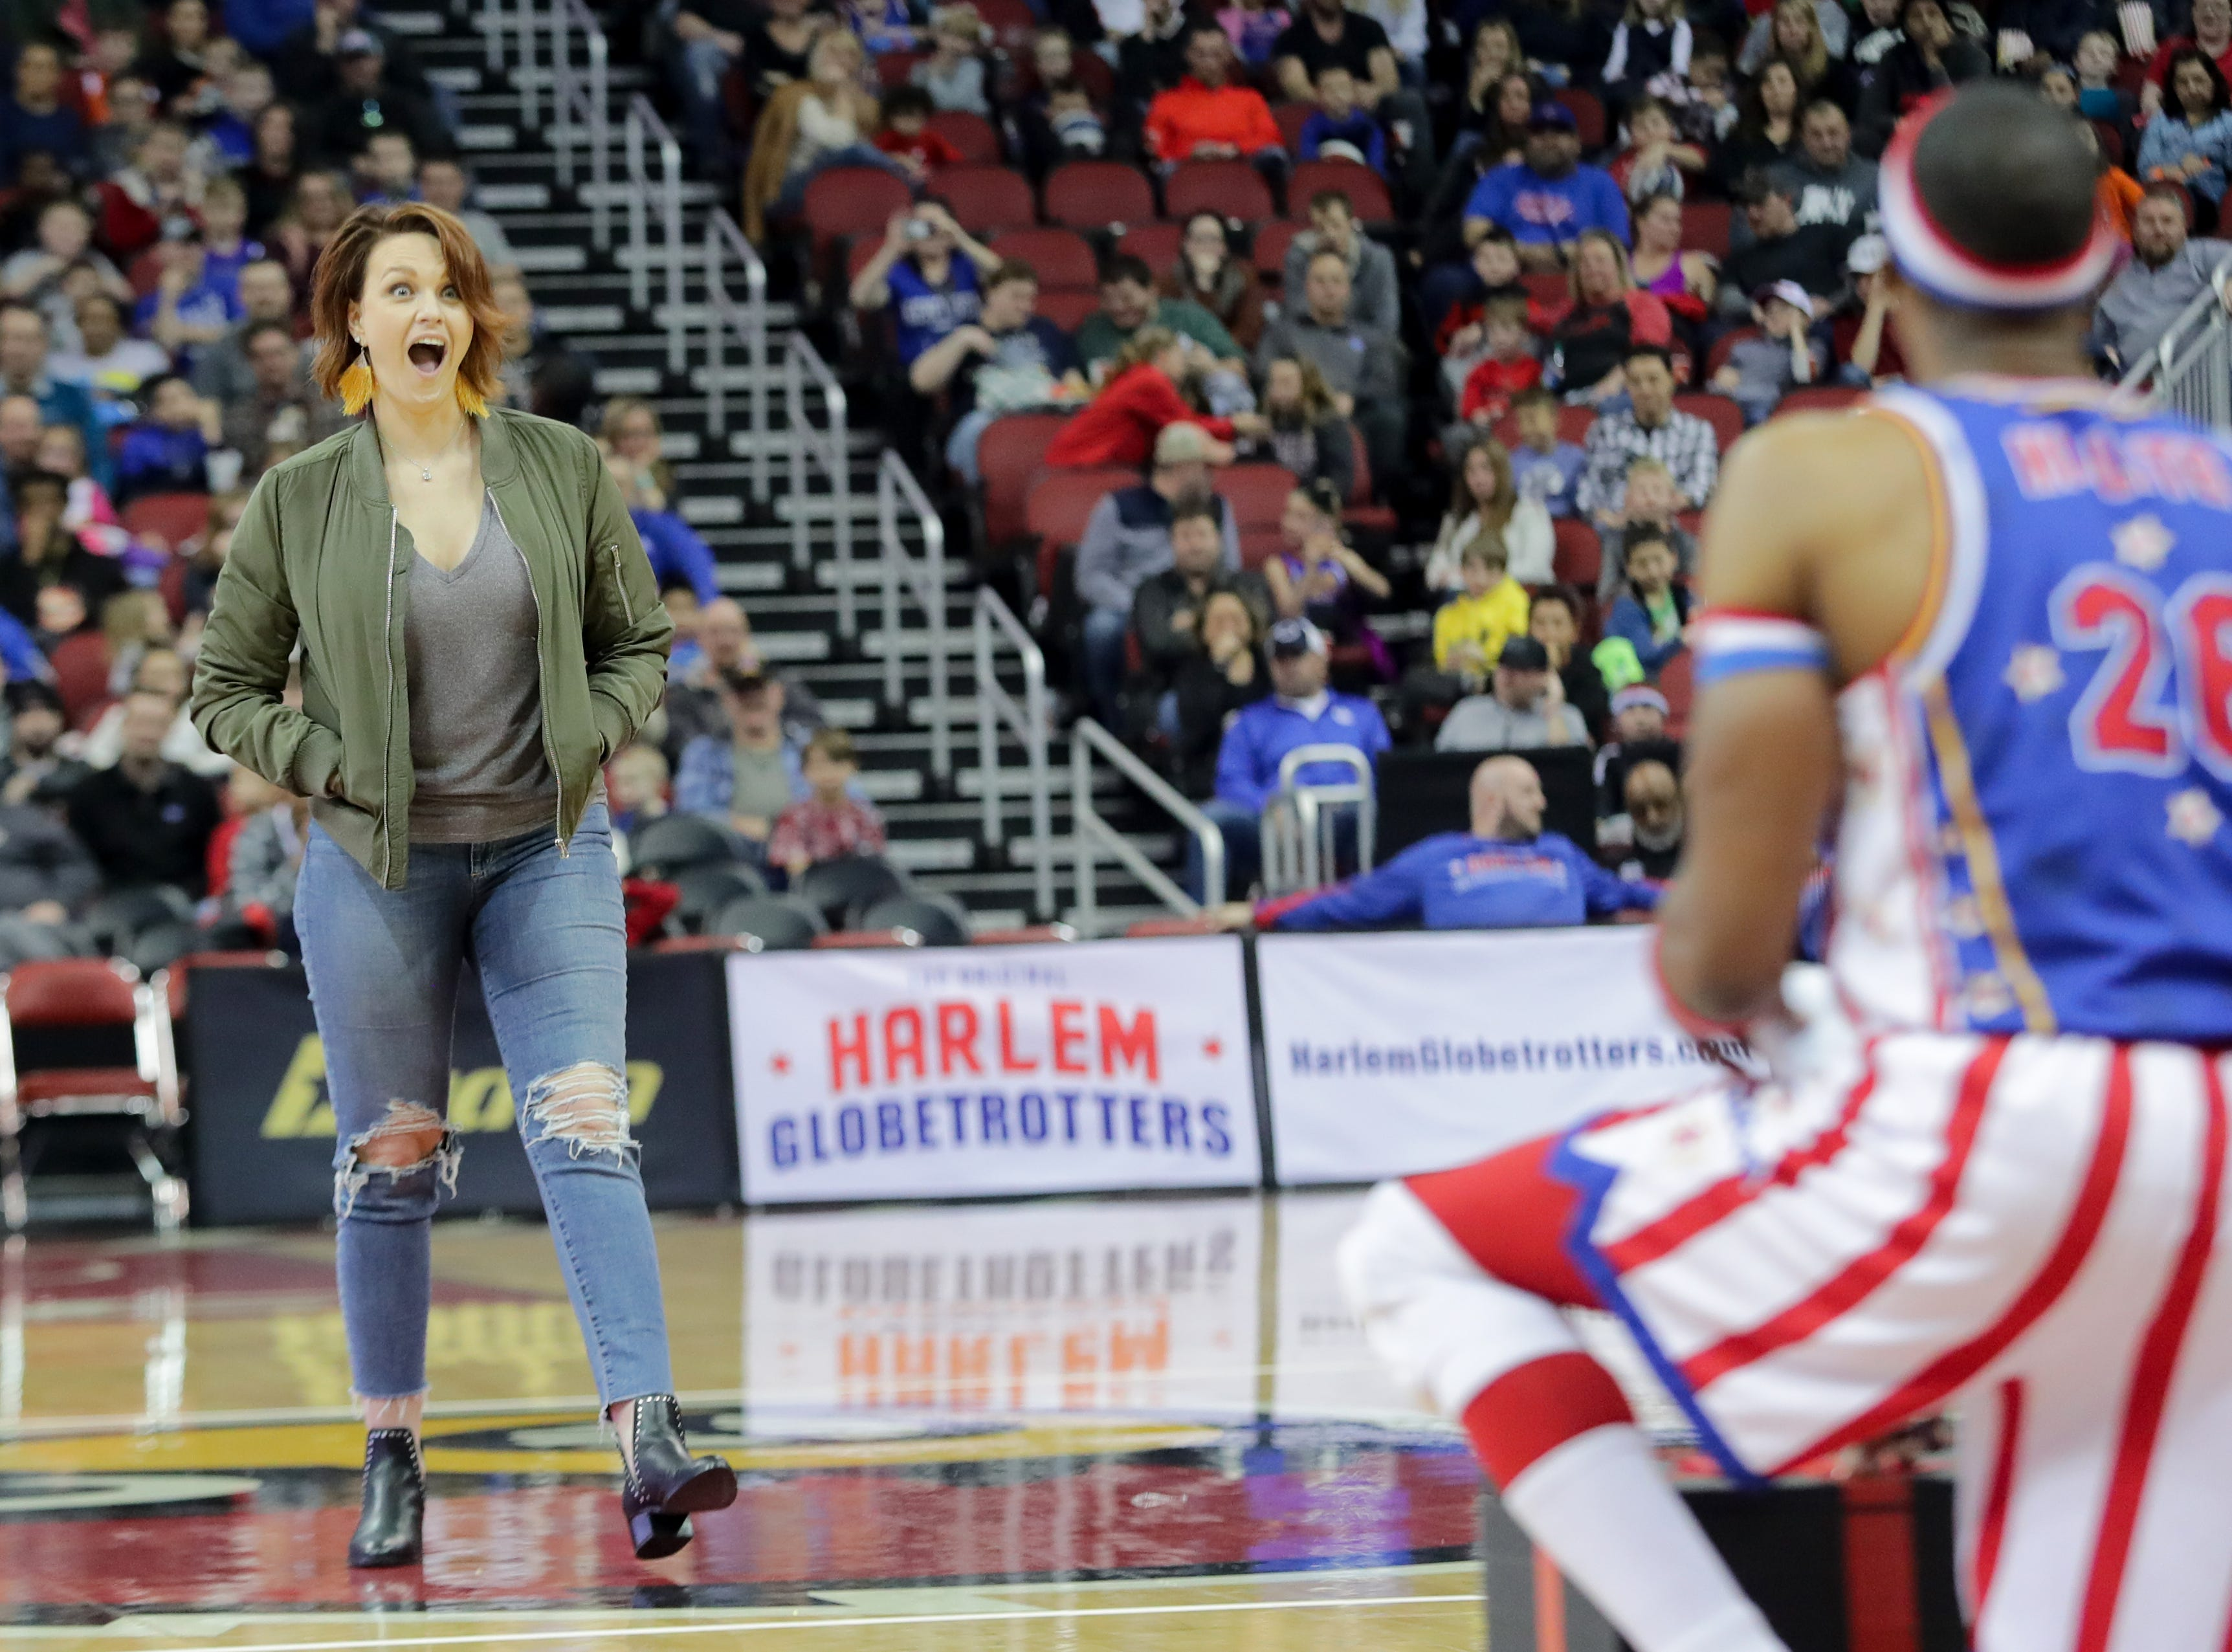 Harlem Globetrotters' Hi-Lite gives a fan a choice between the contents of an envelope or the box.